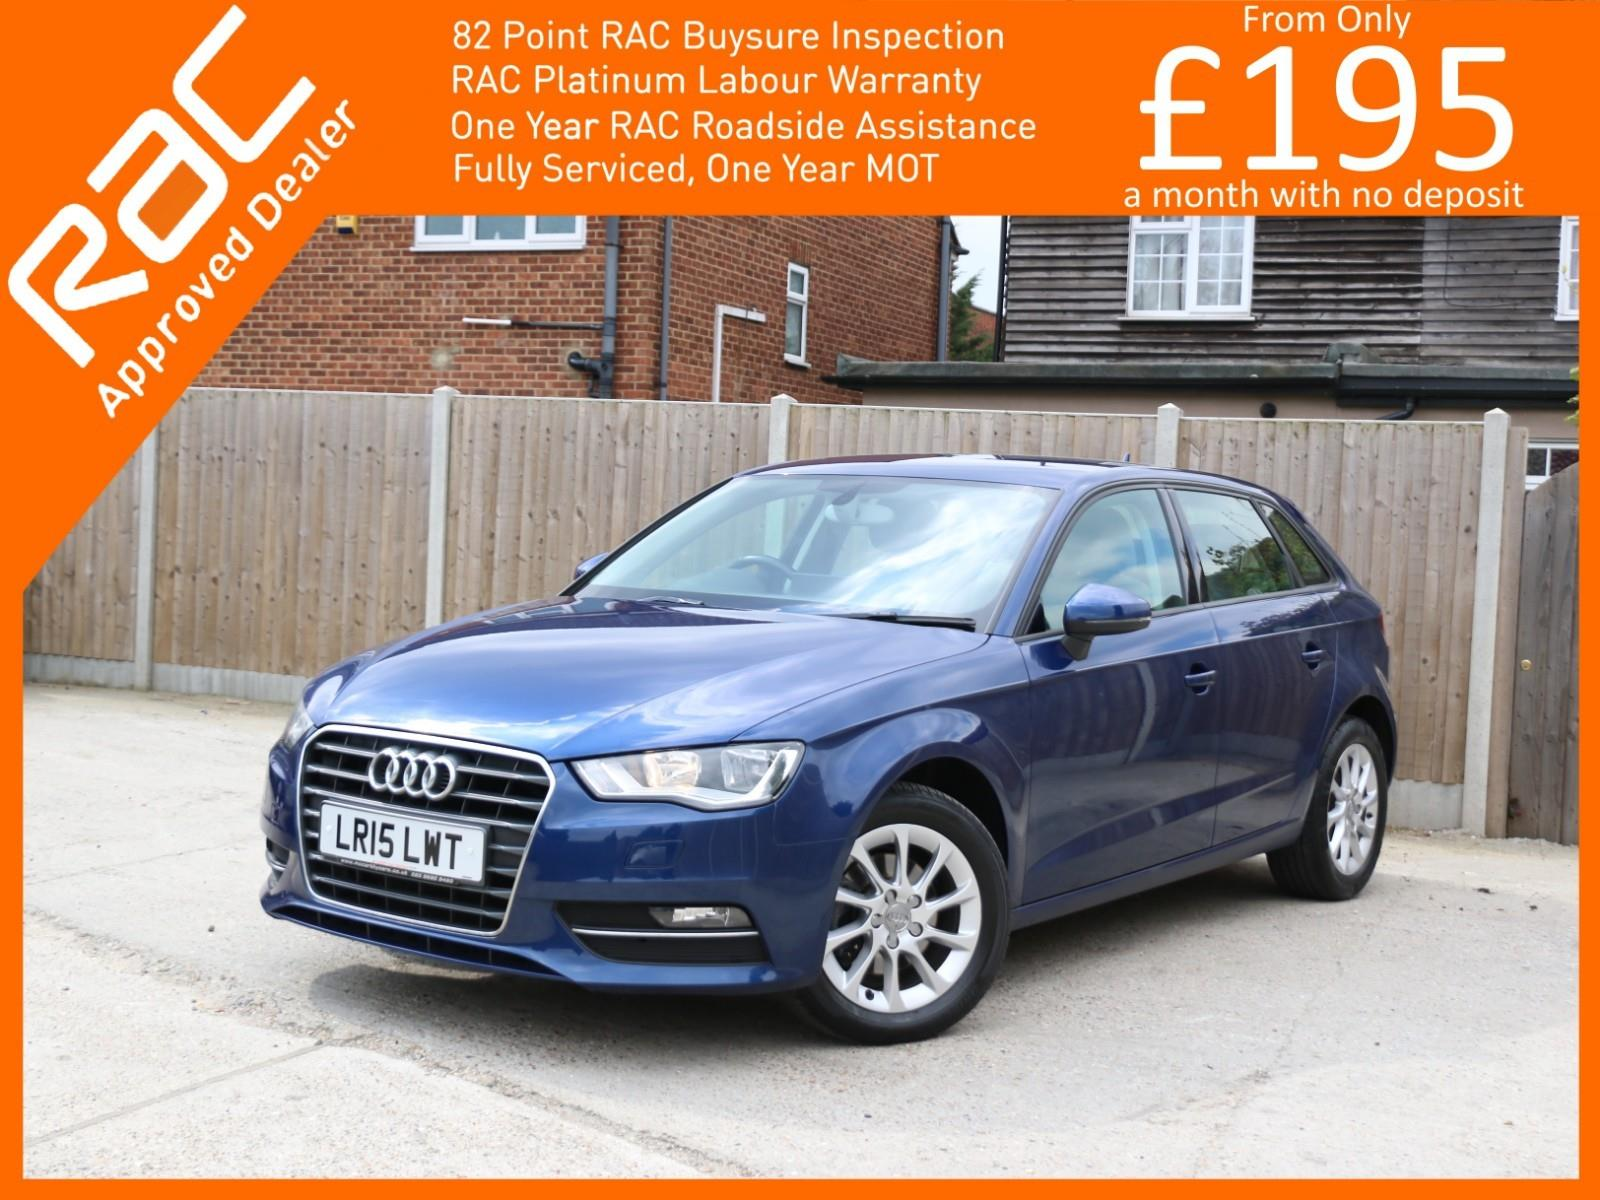 Audi A3 1 2 TFSI SE 5 Door 6 Speed Bluetooth DAB Air Con Alloys Just 1  Owner Only 49,000 Miles Full Service History Only £30 a Year Road Tax NO